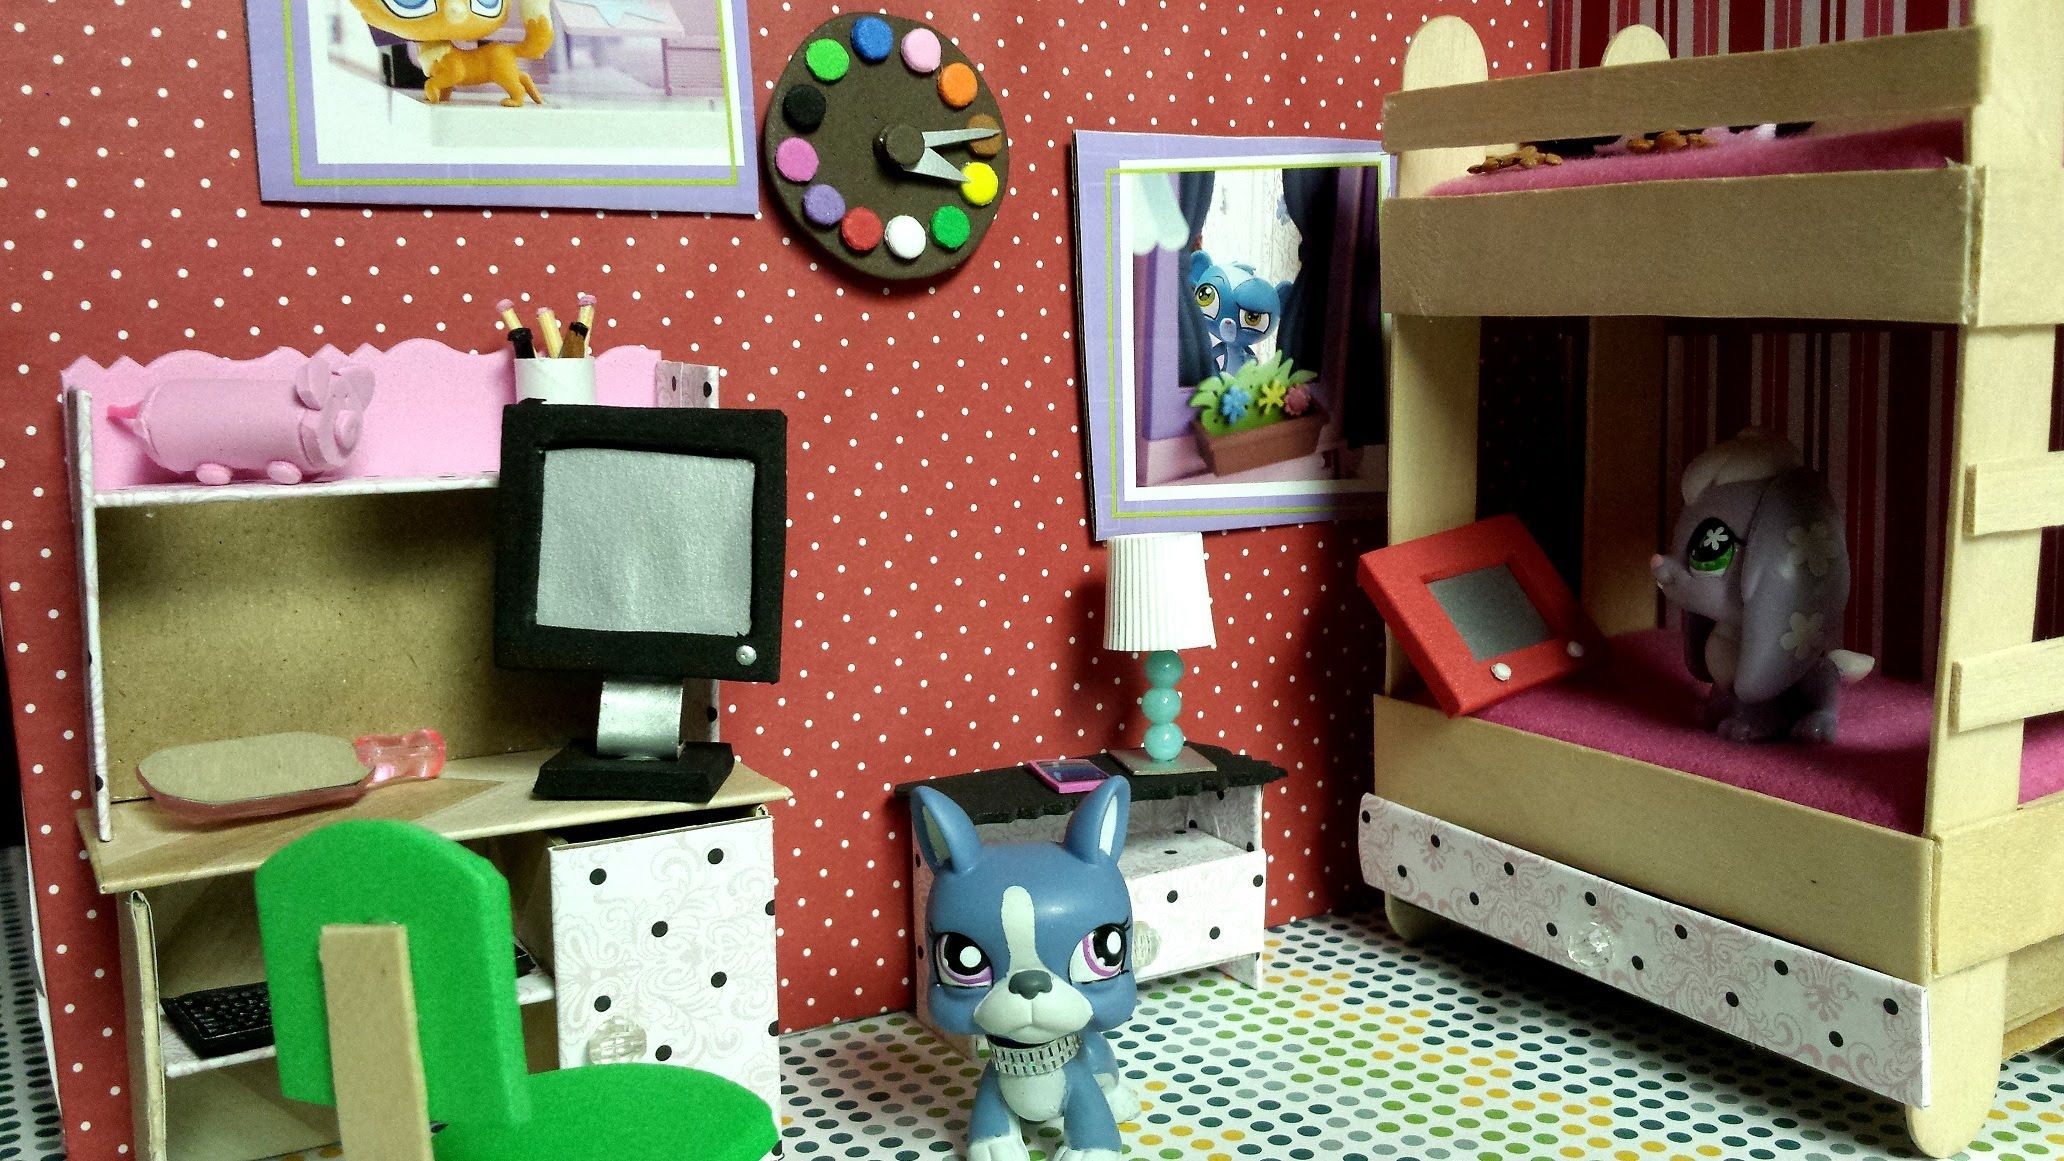 How to Make a Tiny Wall Clock for a LPS Bedroom Easy LPS Doll DIY